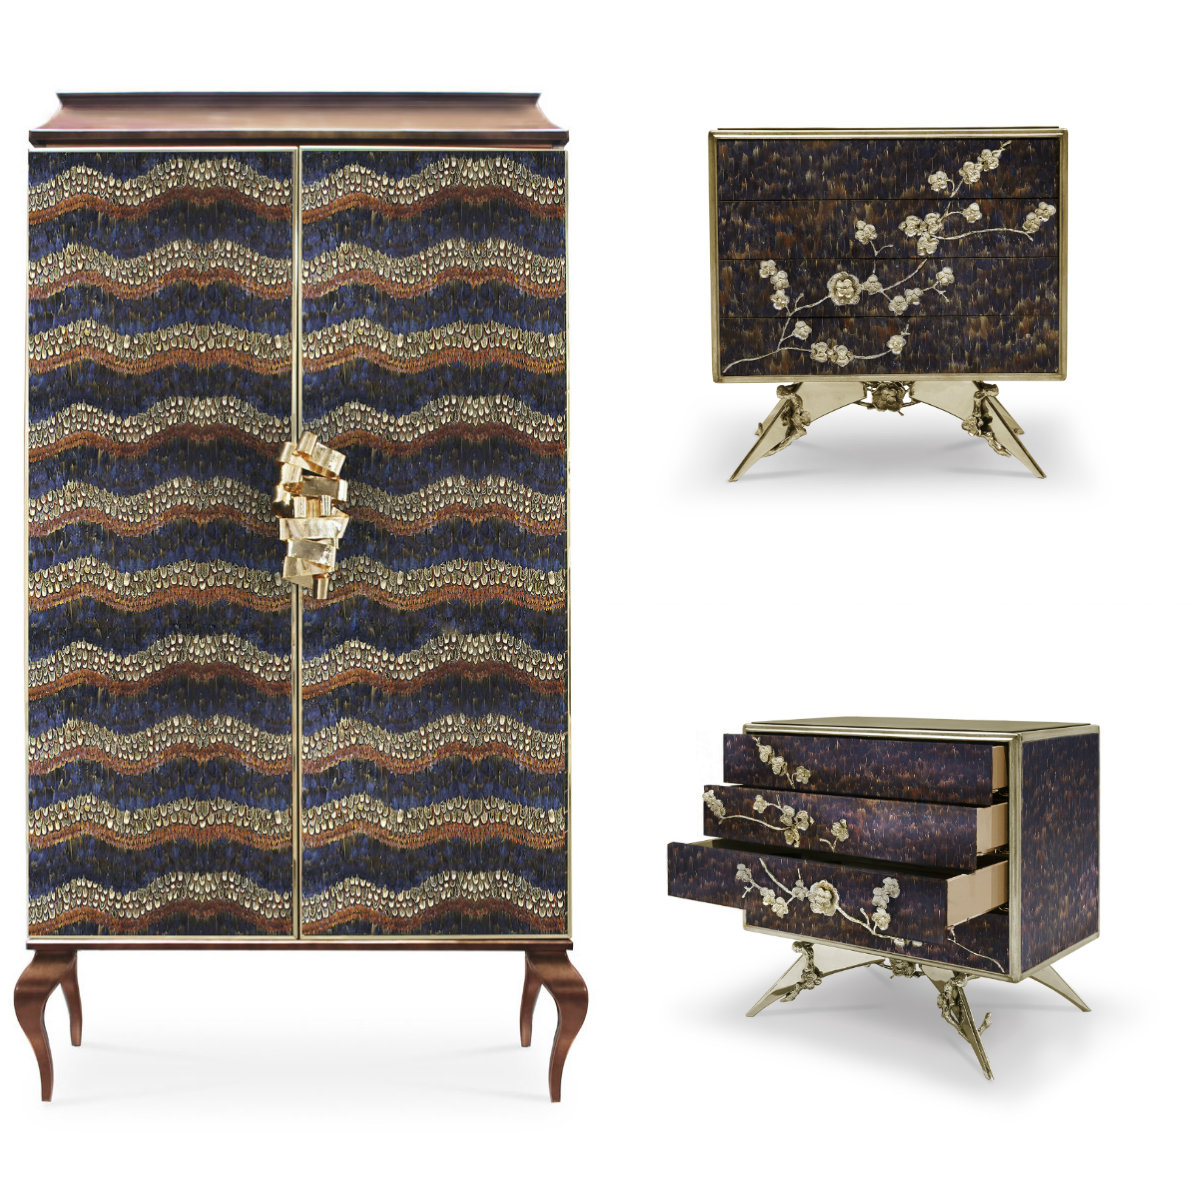 Feathers galore on the Divine Armoire and Spellbound Nightstand. safari Serengeti Seduction: An Exotic KOKET Safari Serengeti Seduction An Exotic KOKET Safari 3